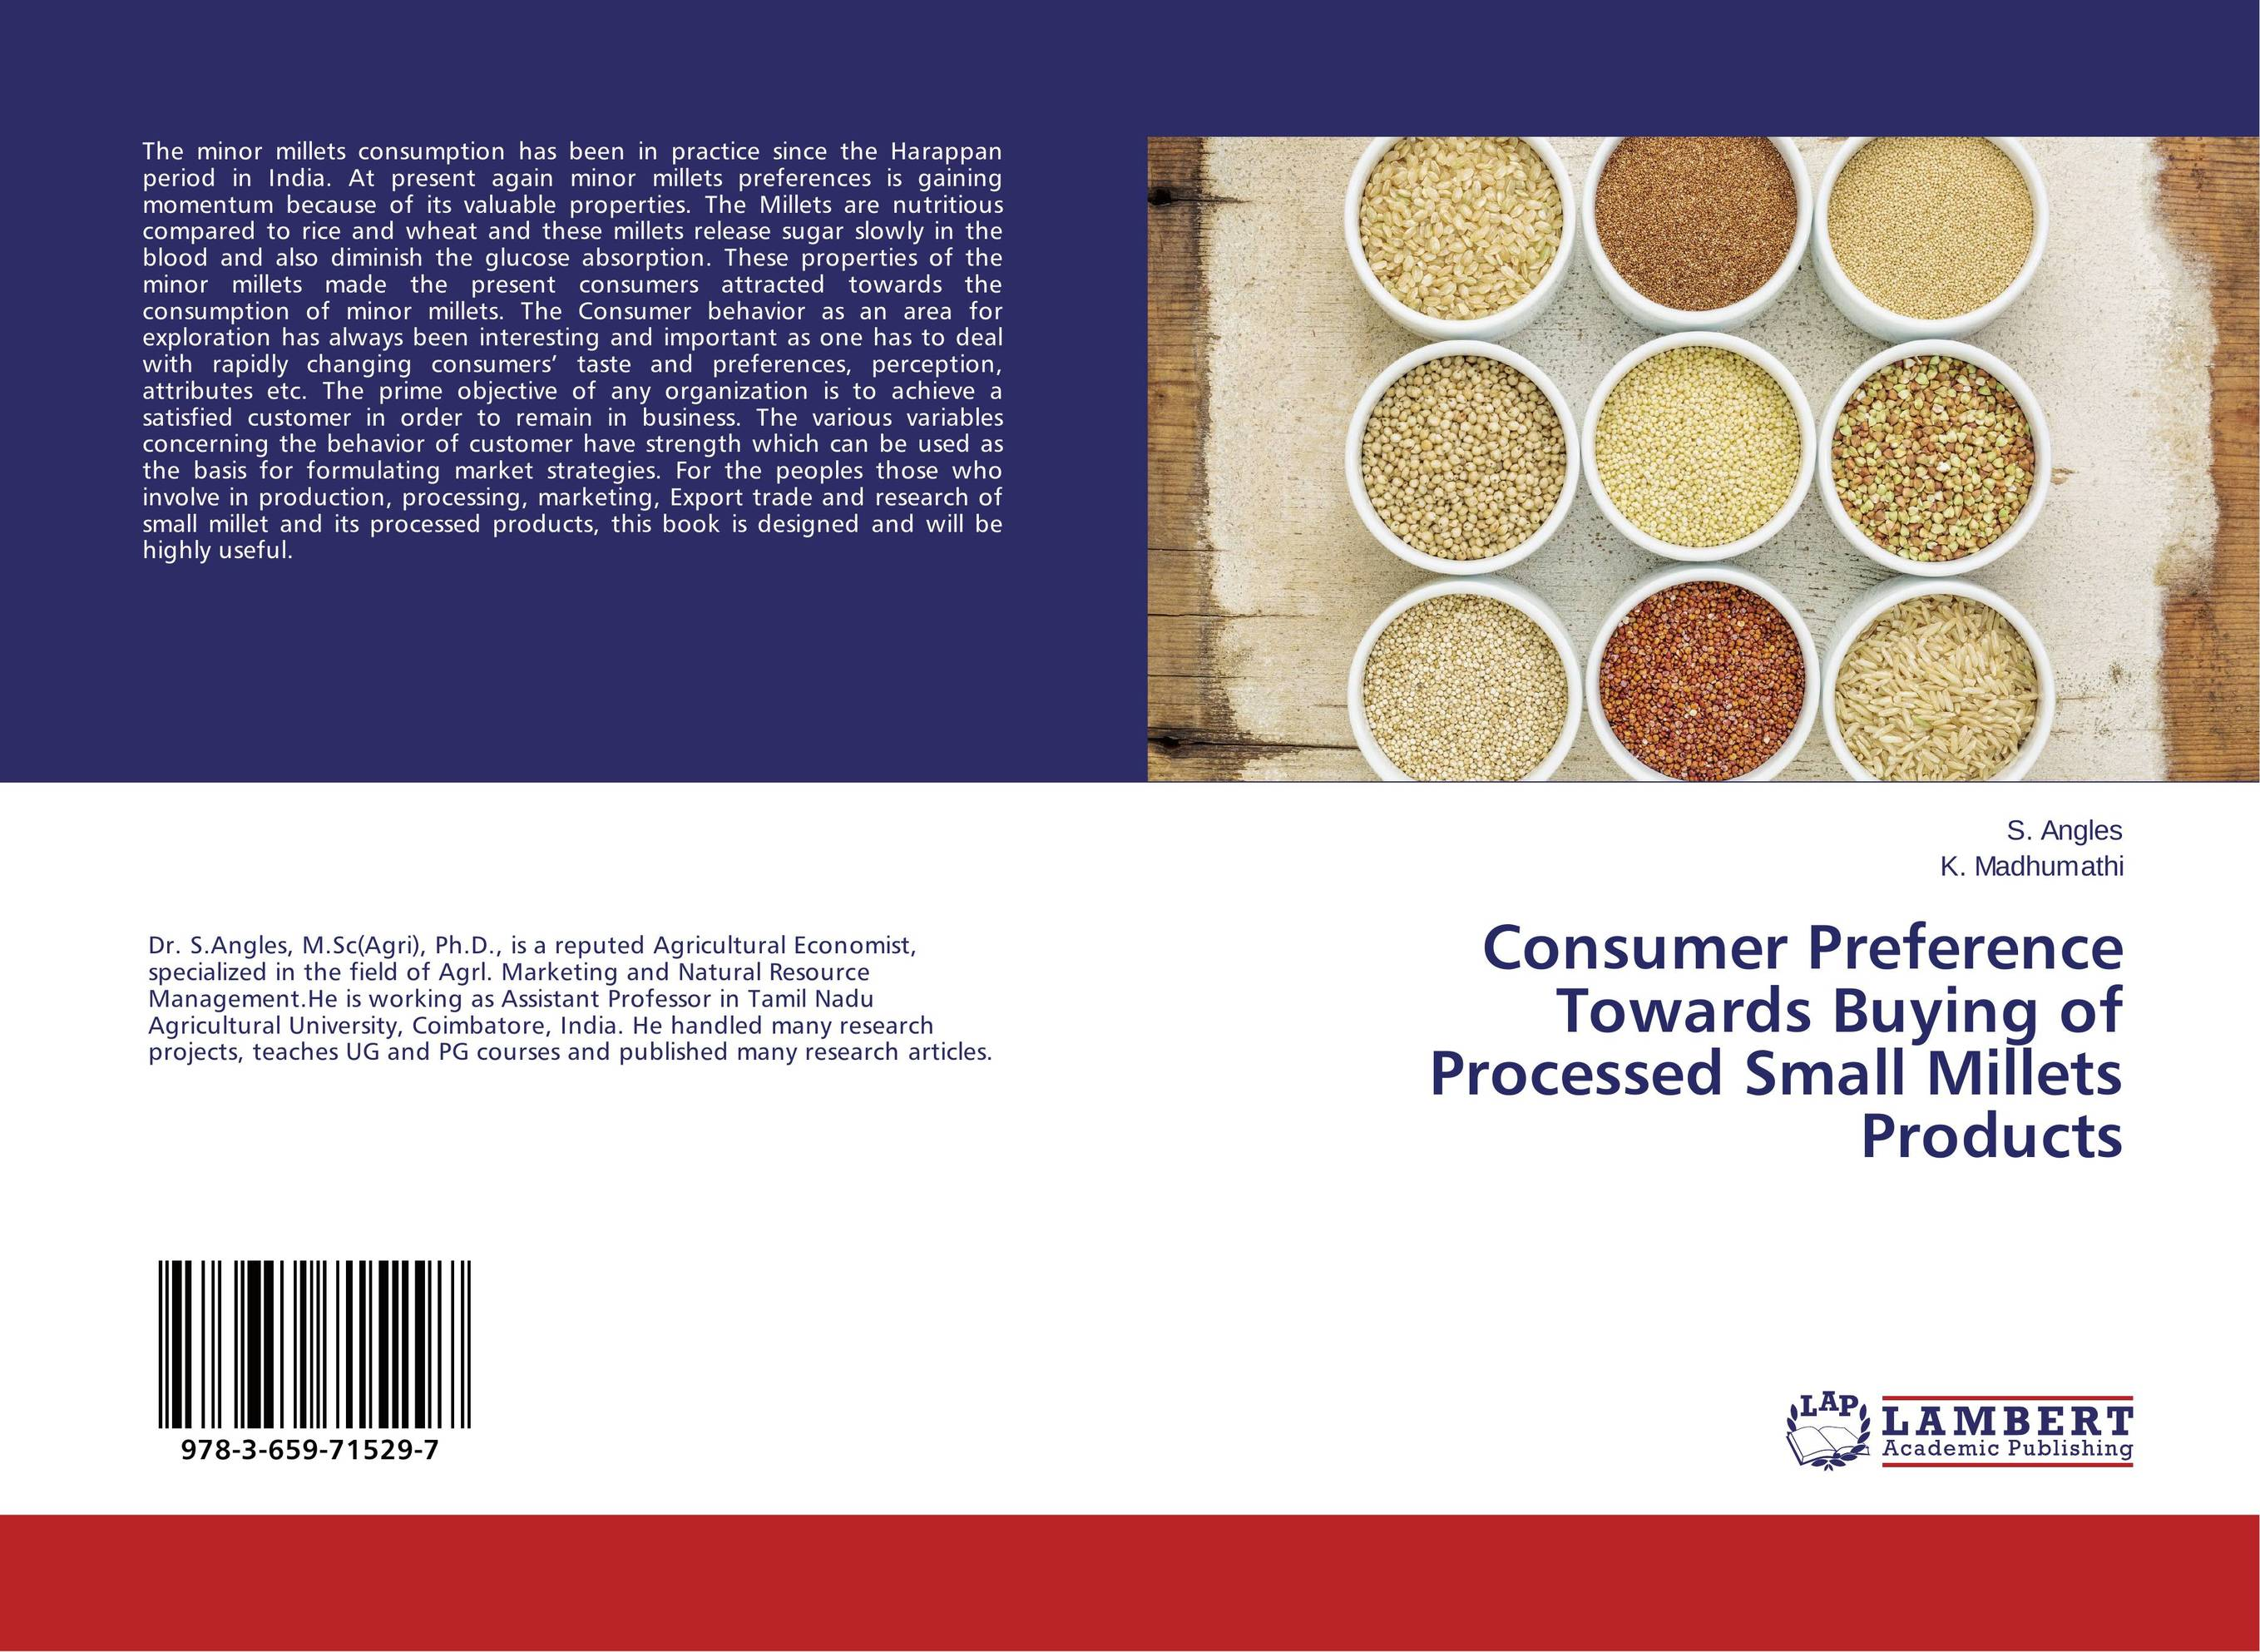 Consumer Preference Towards Buying of Processed Small Millets Products